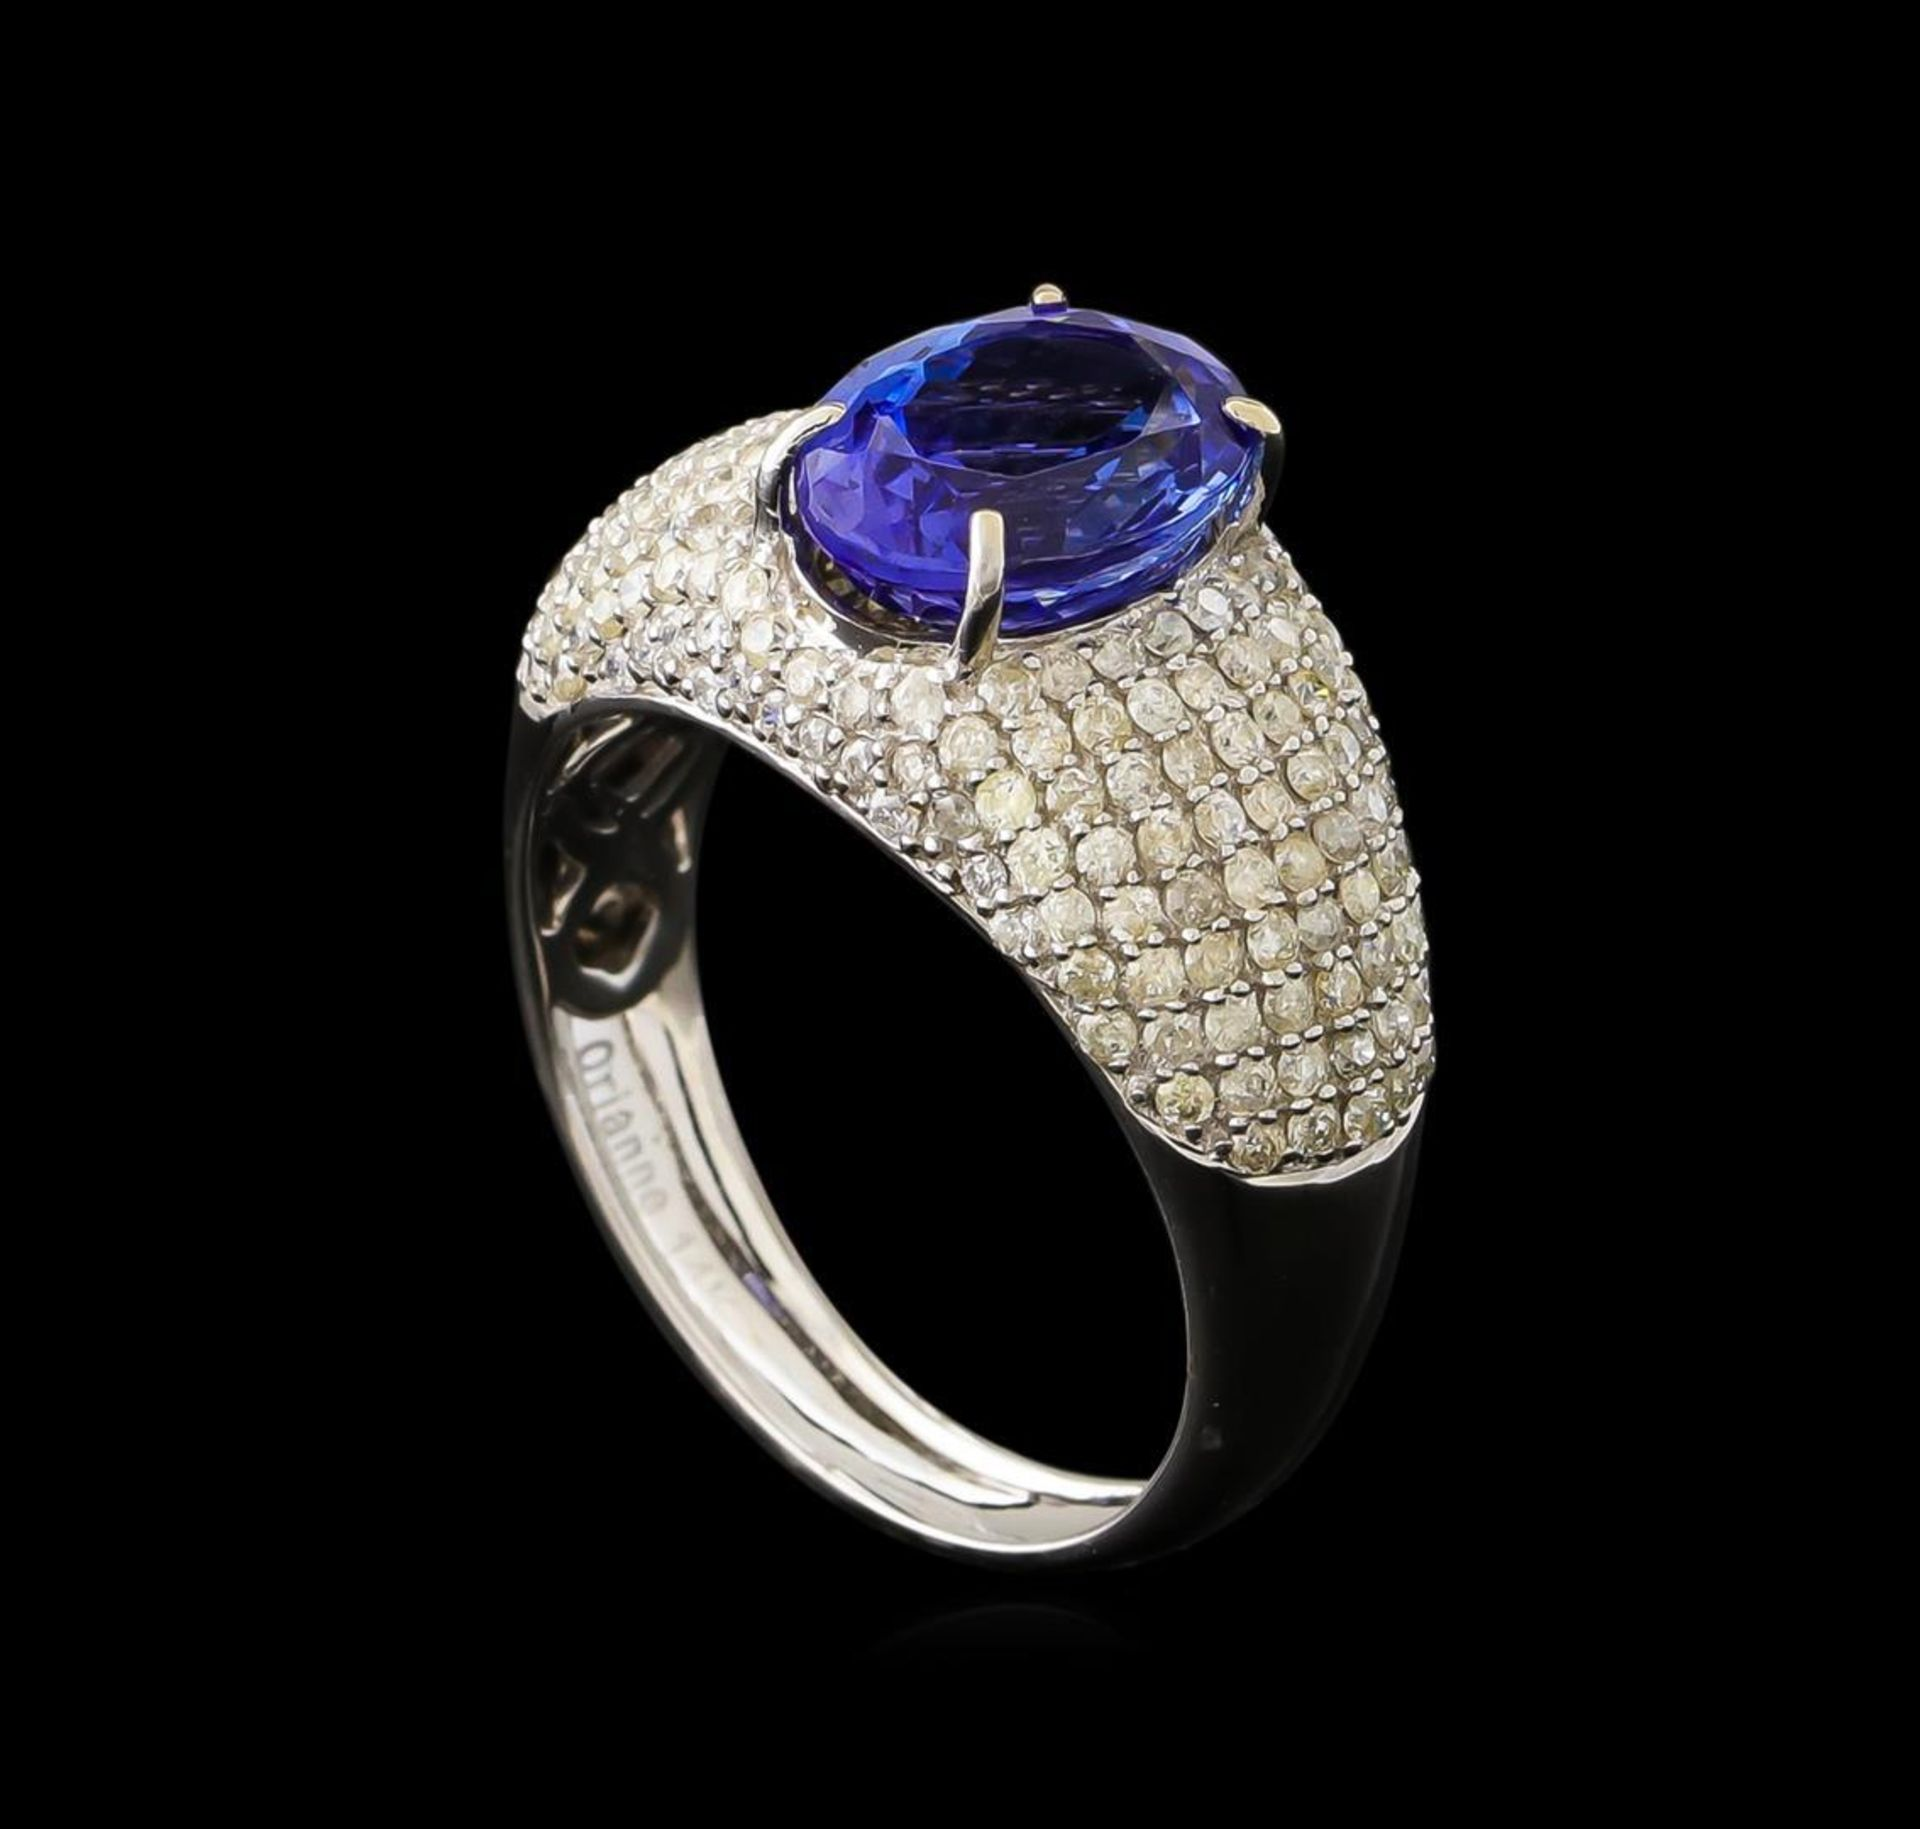 2.77ct Tanzanite and Diamond Ring - 14KT White Gold - Image 4 of 5